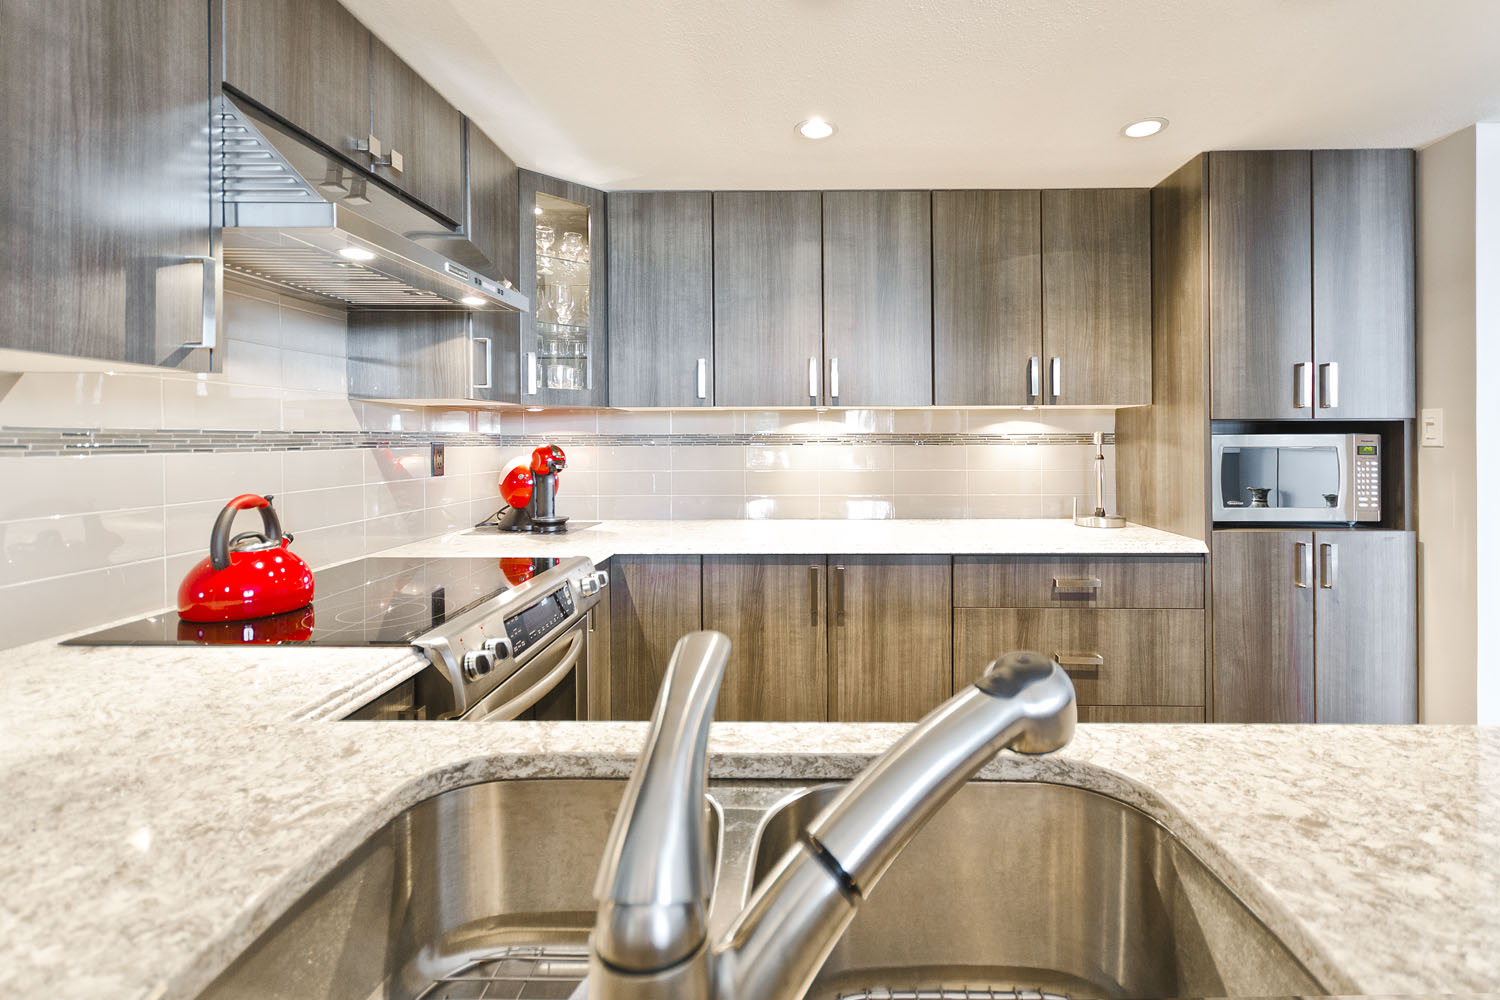 Newport Village Port Moody Home Kitchen And Bathroom Renovation And Remodelling Services In